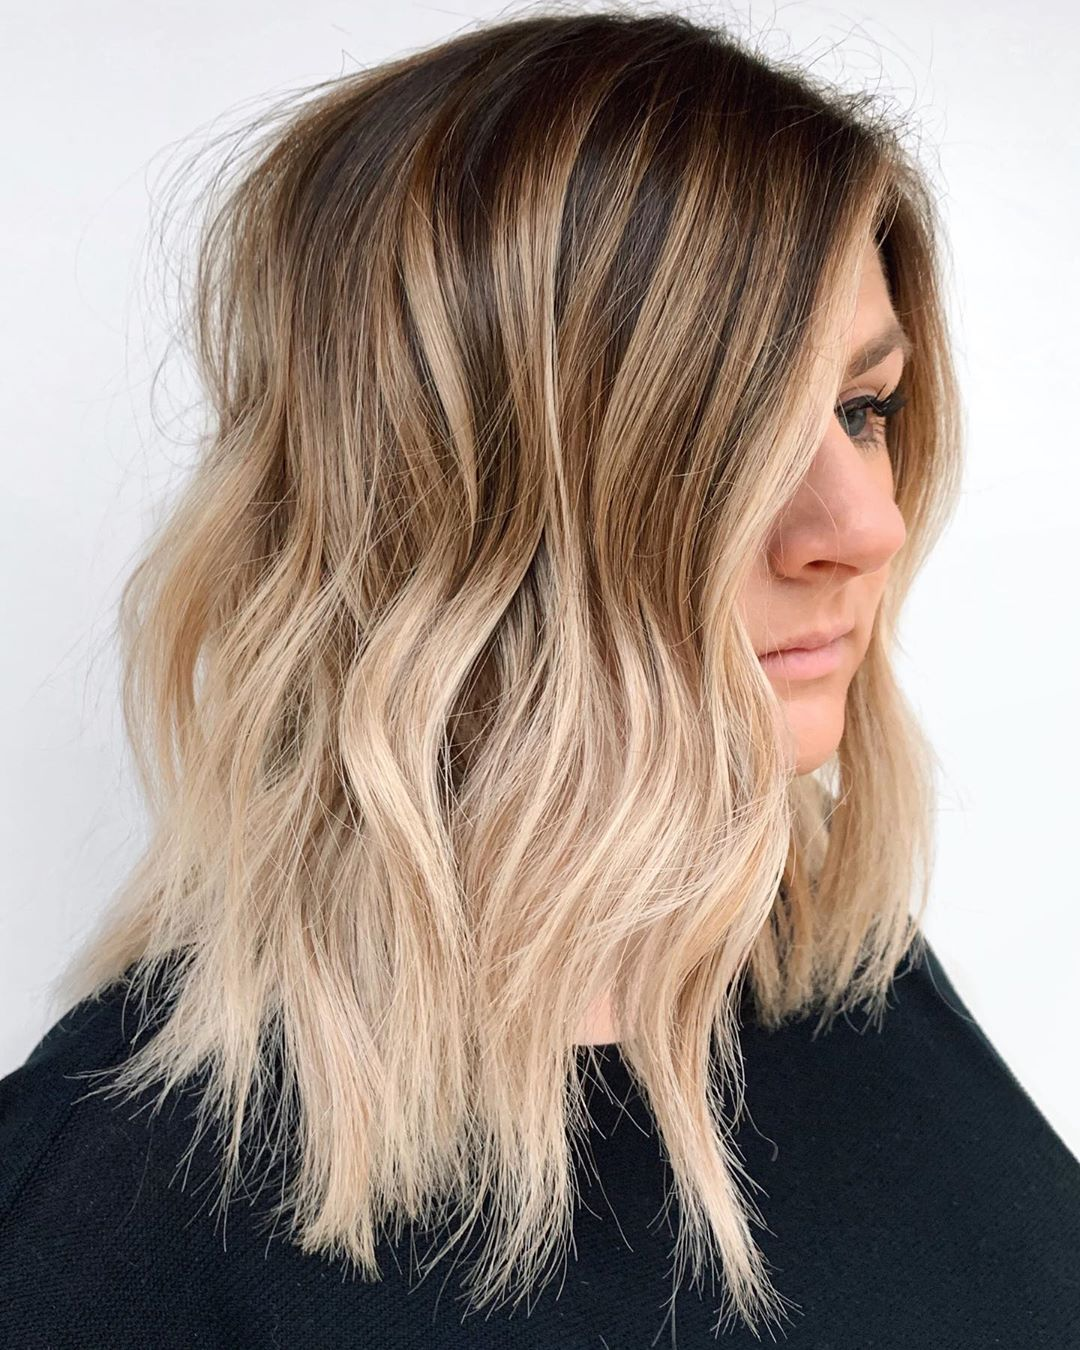 Bronde Ombre with Light Ends